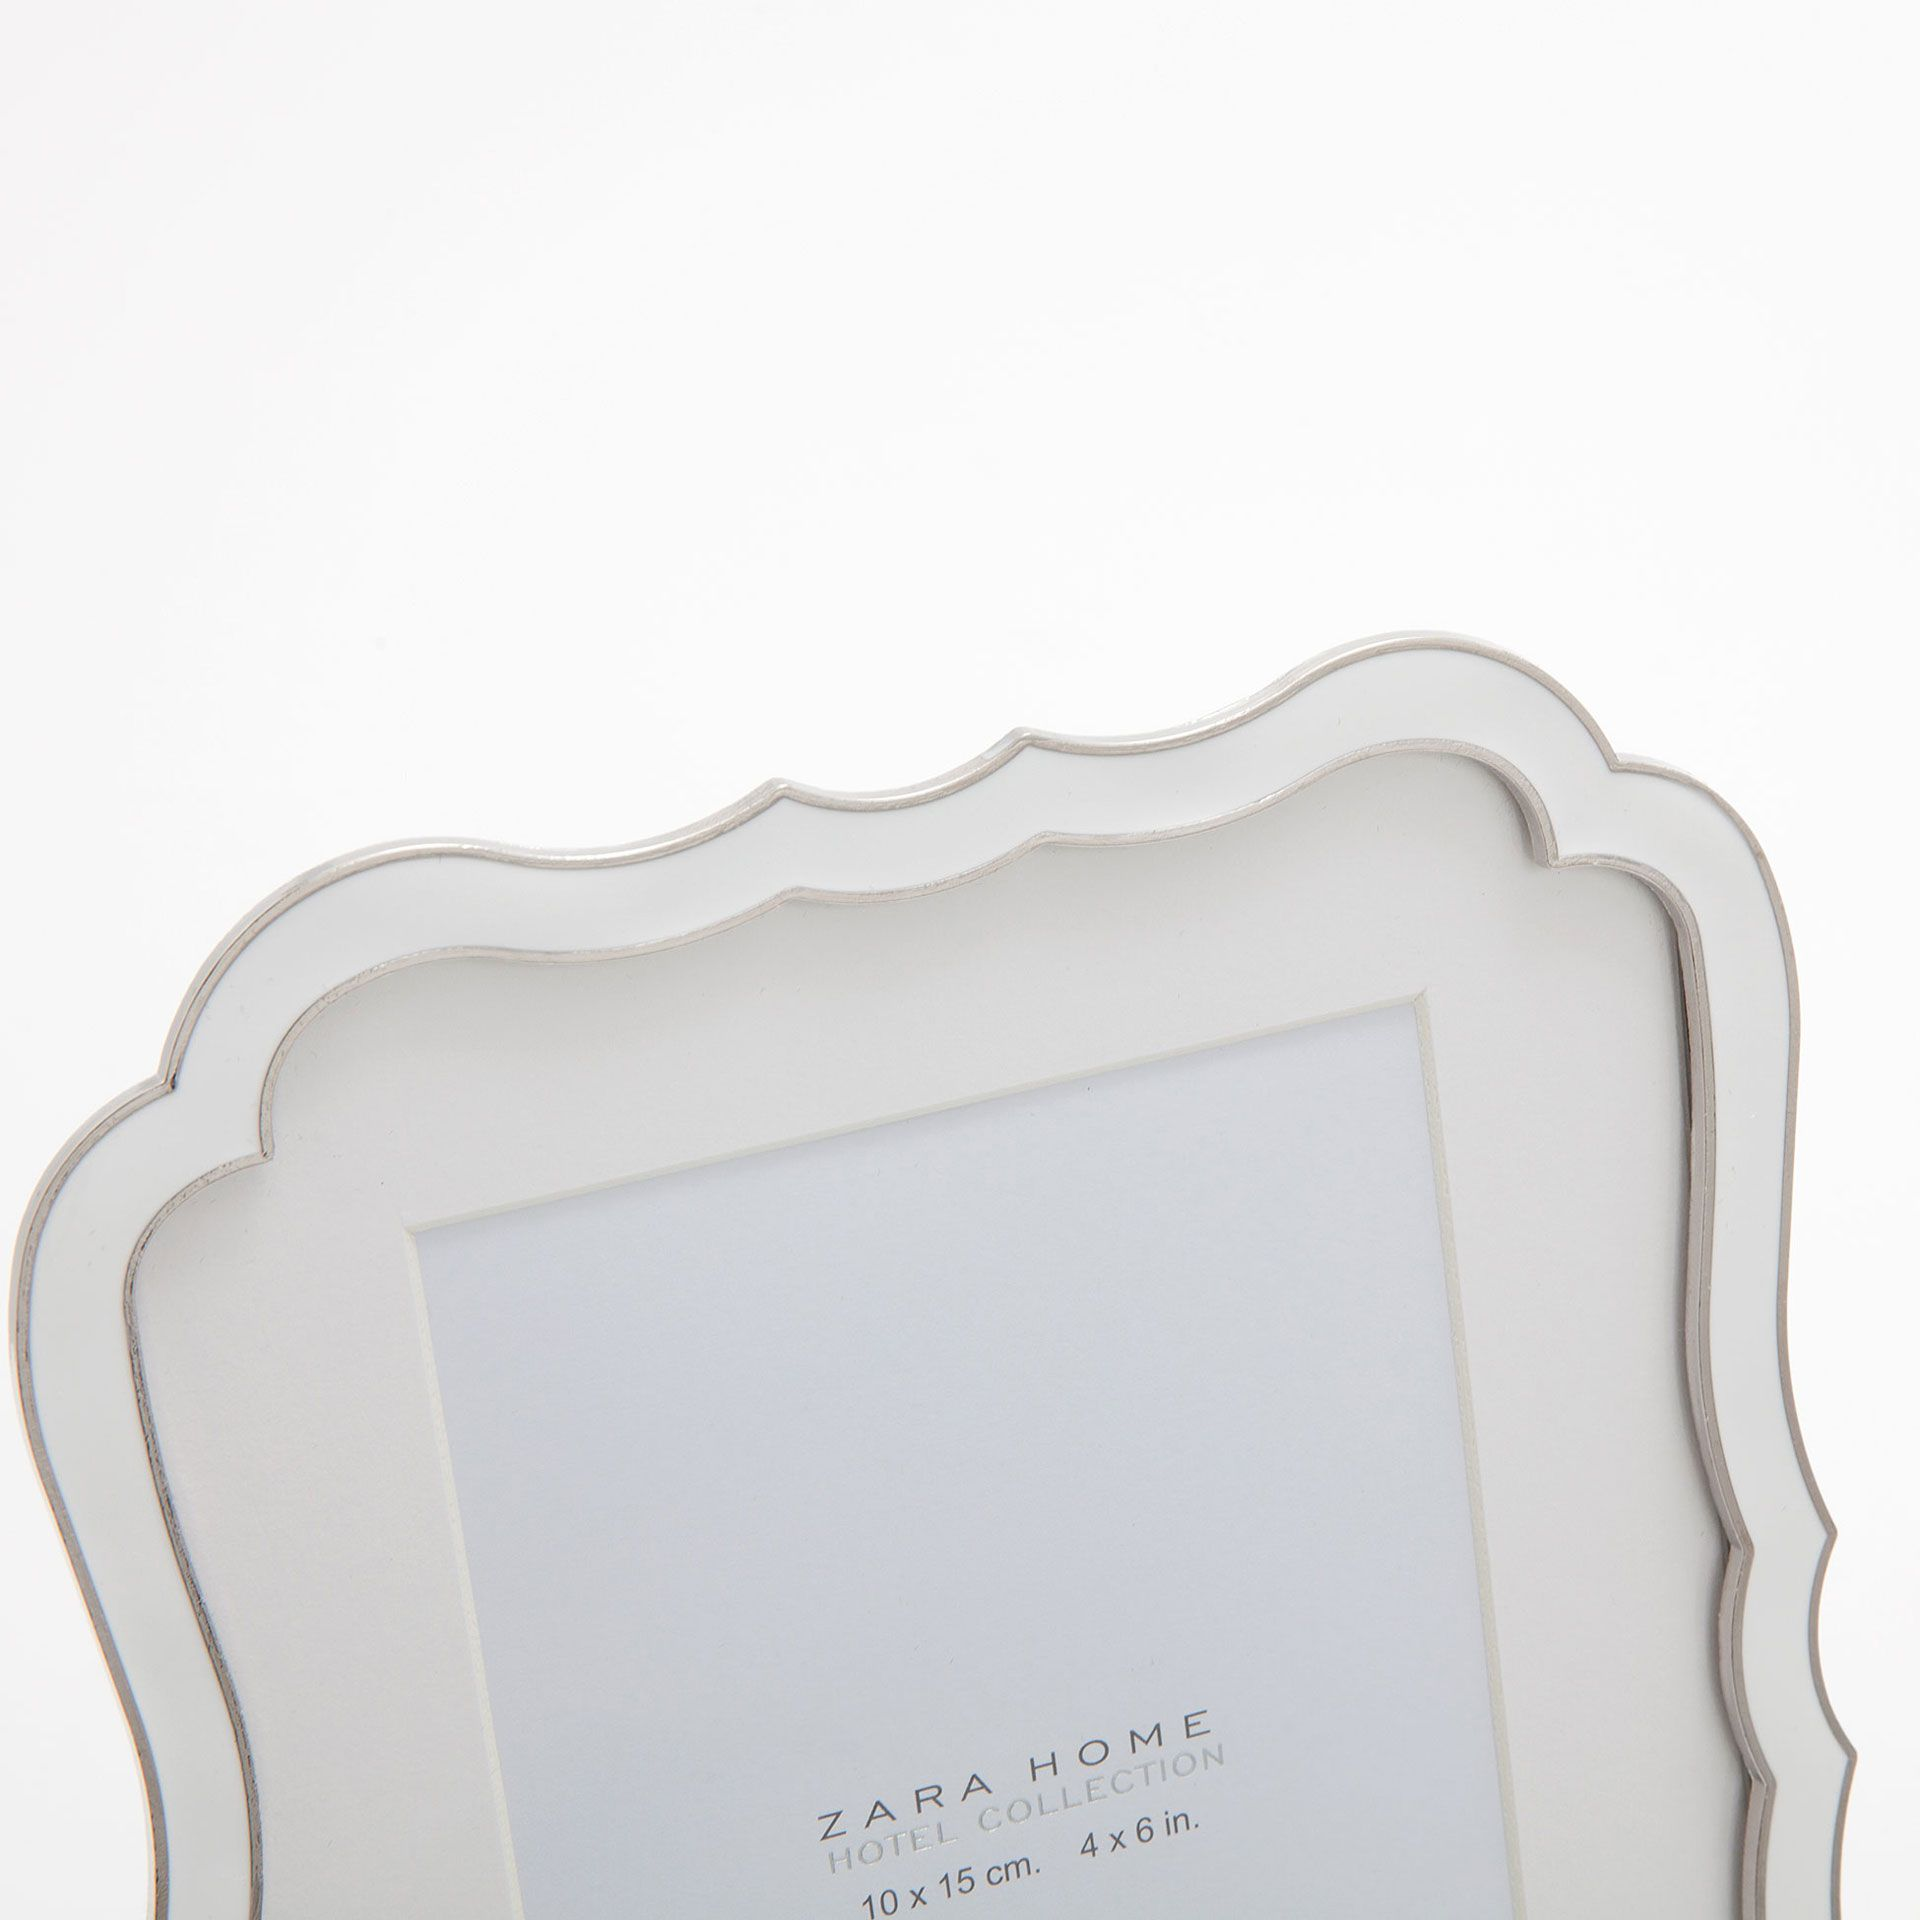 Romantic Frame Romantic Frame Frame Zara Home